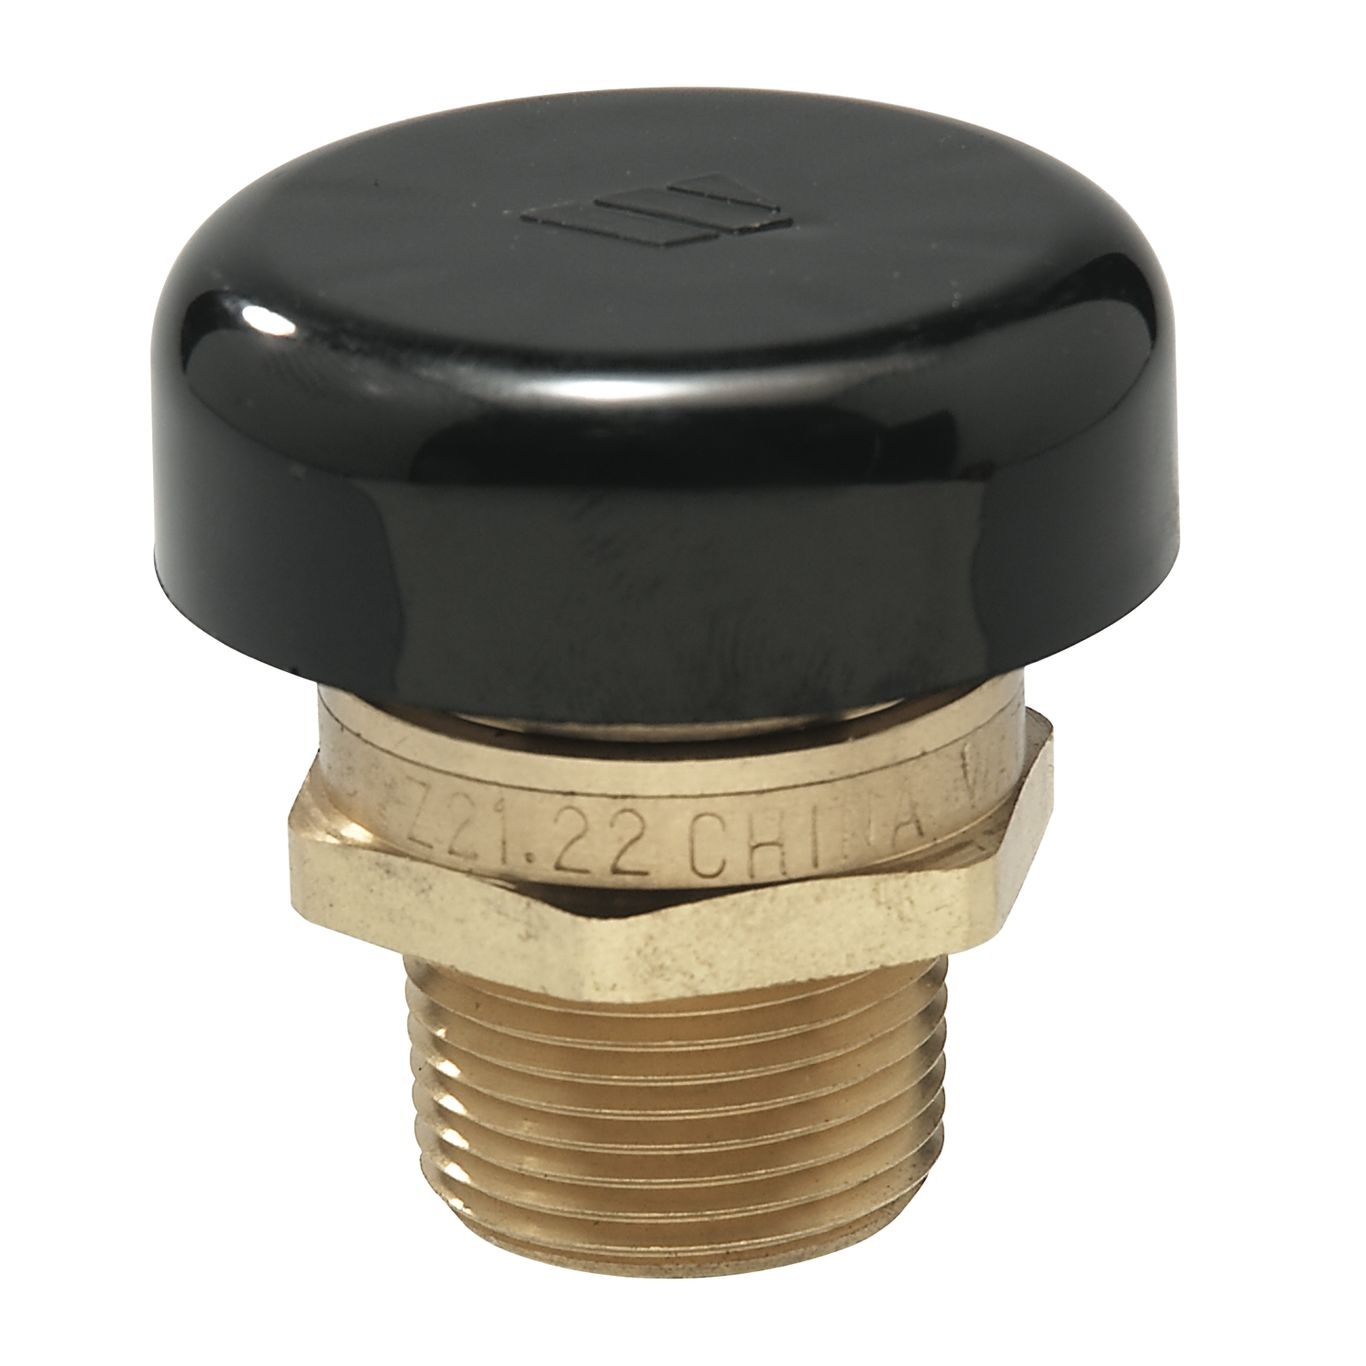 1/2inch LFN36 WATTS VACUUM RELIEF VALVE LEAD FREE